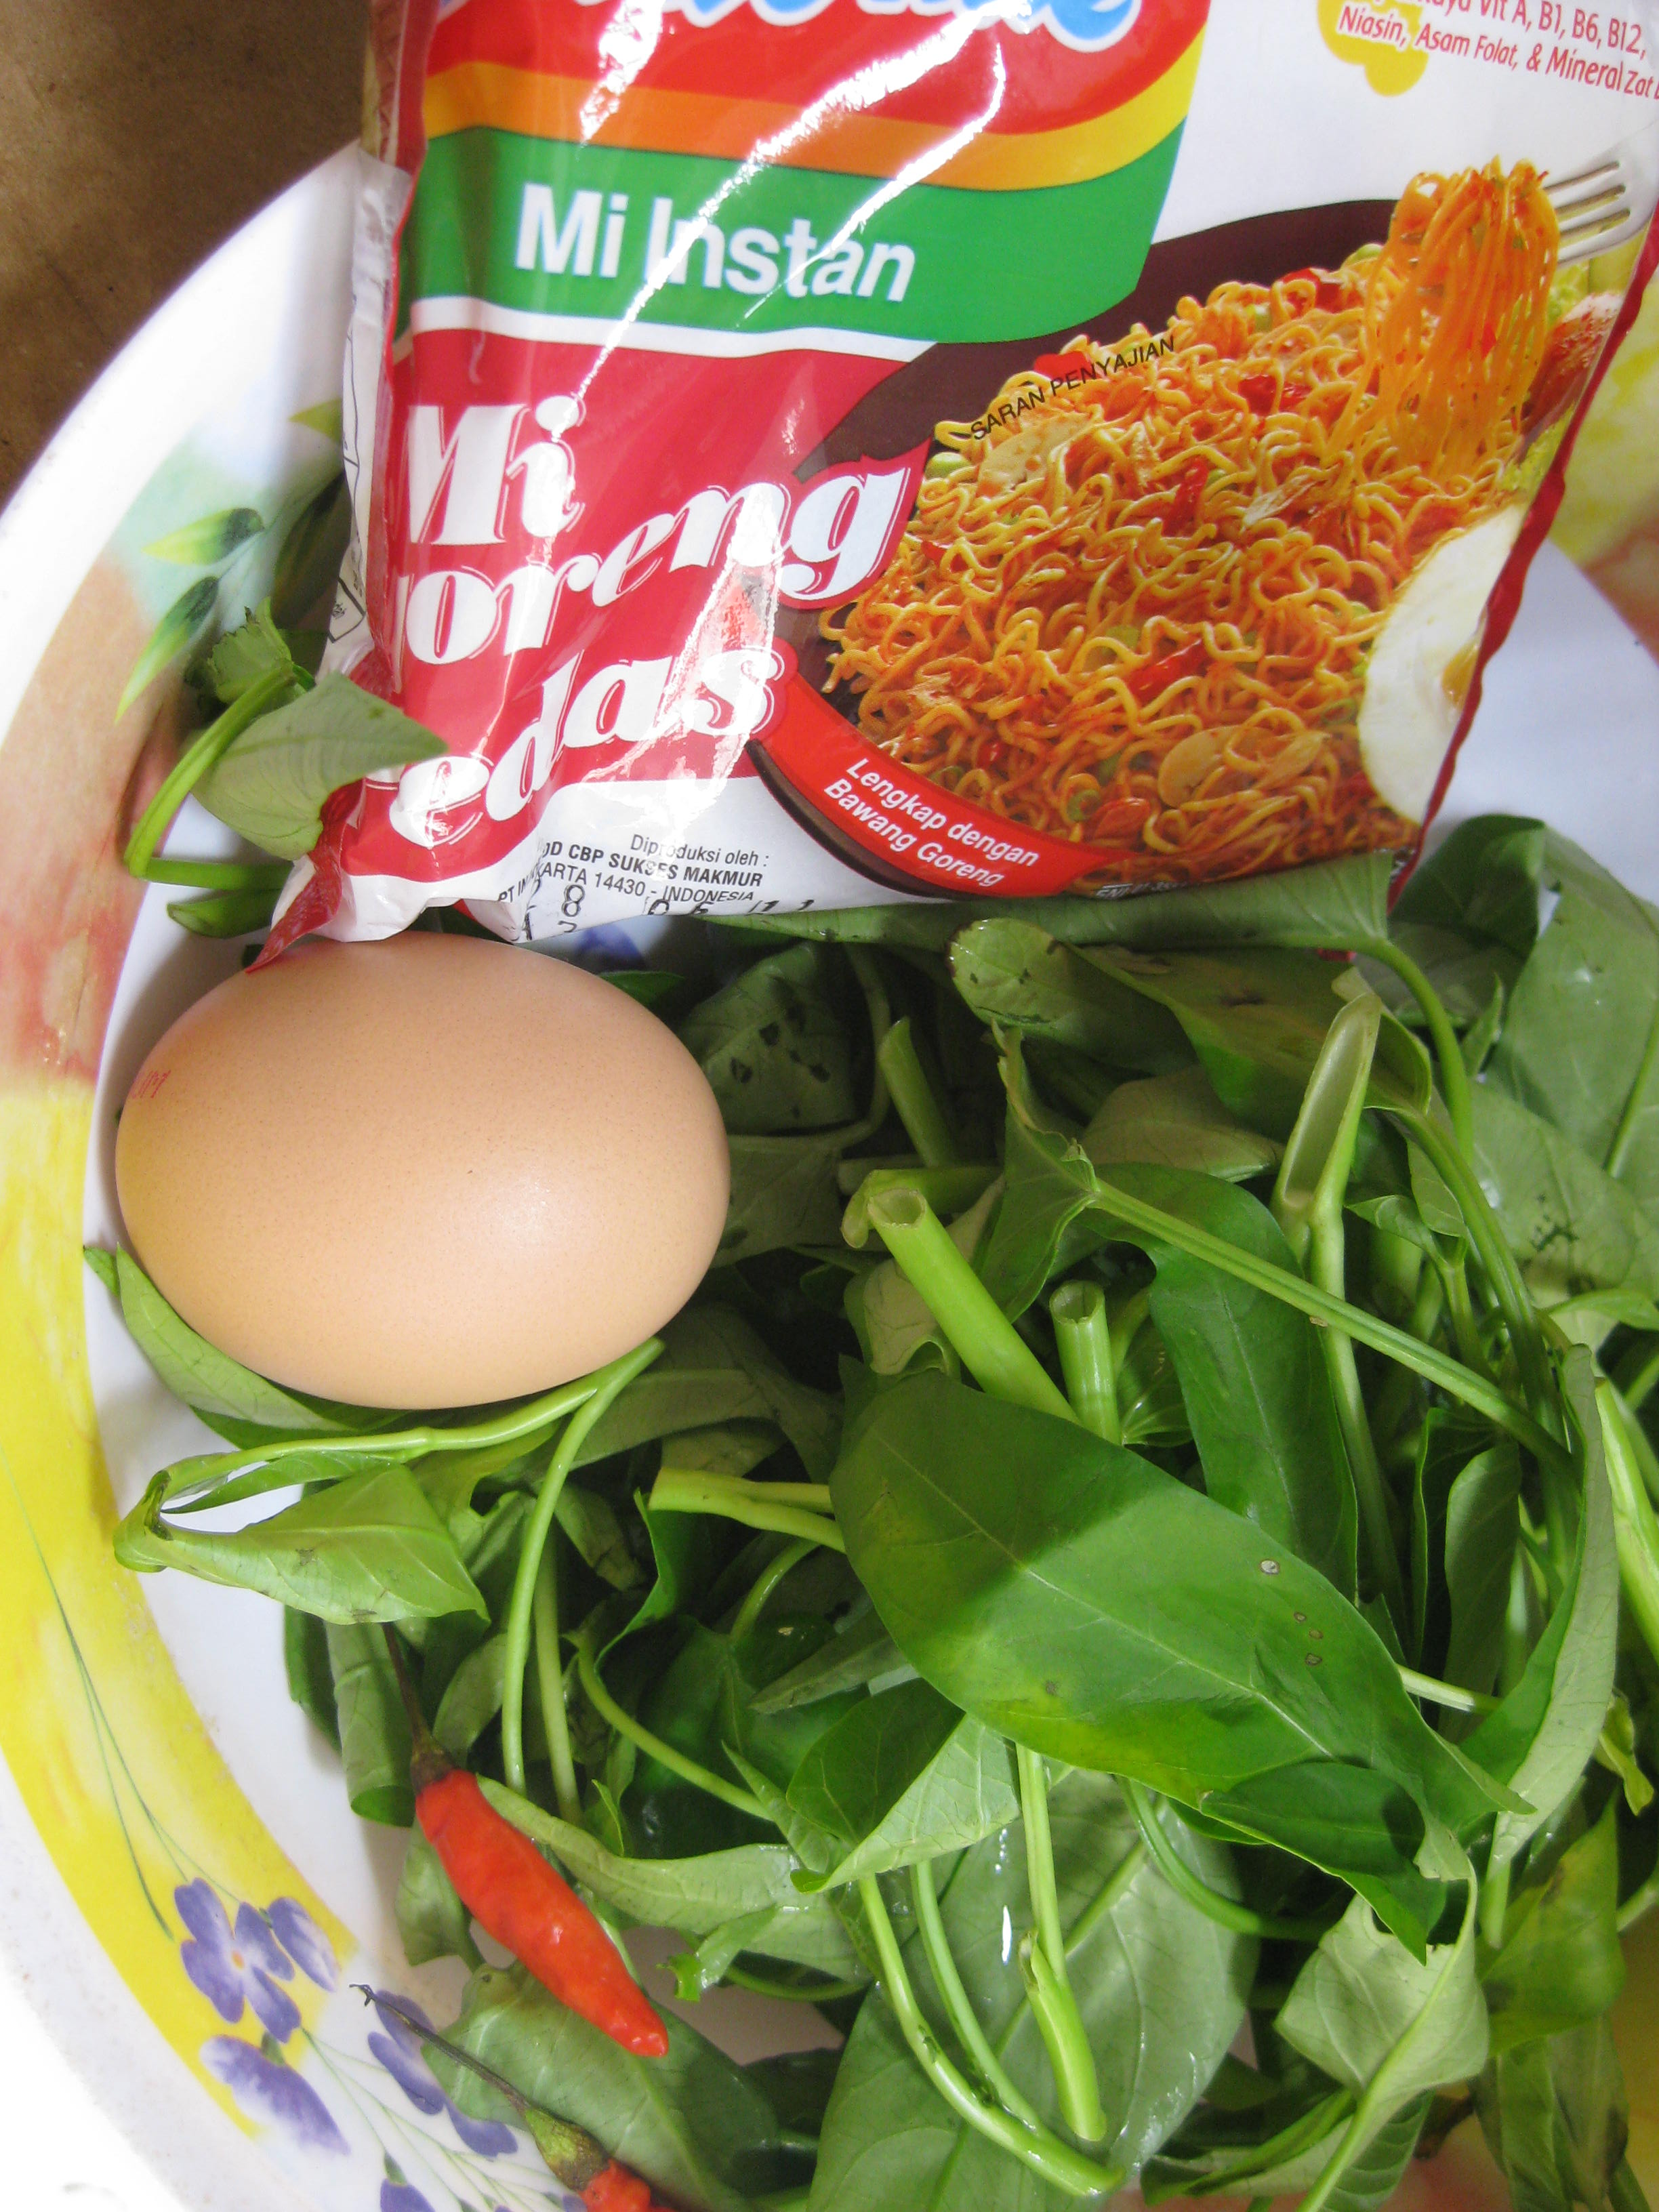 In Indonesia, it is considered a taboo to serve Kangkung to honoured guests